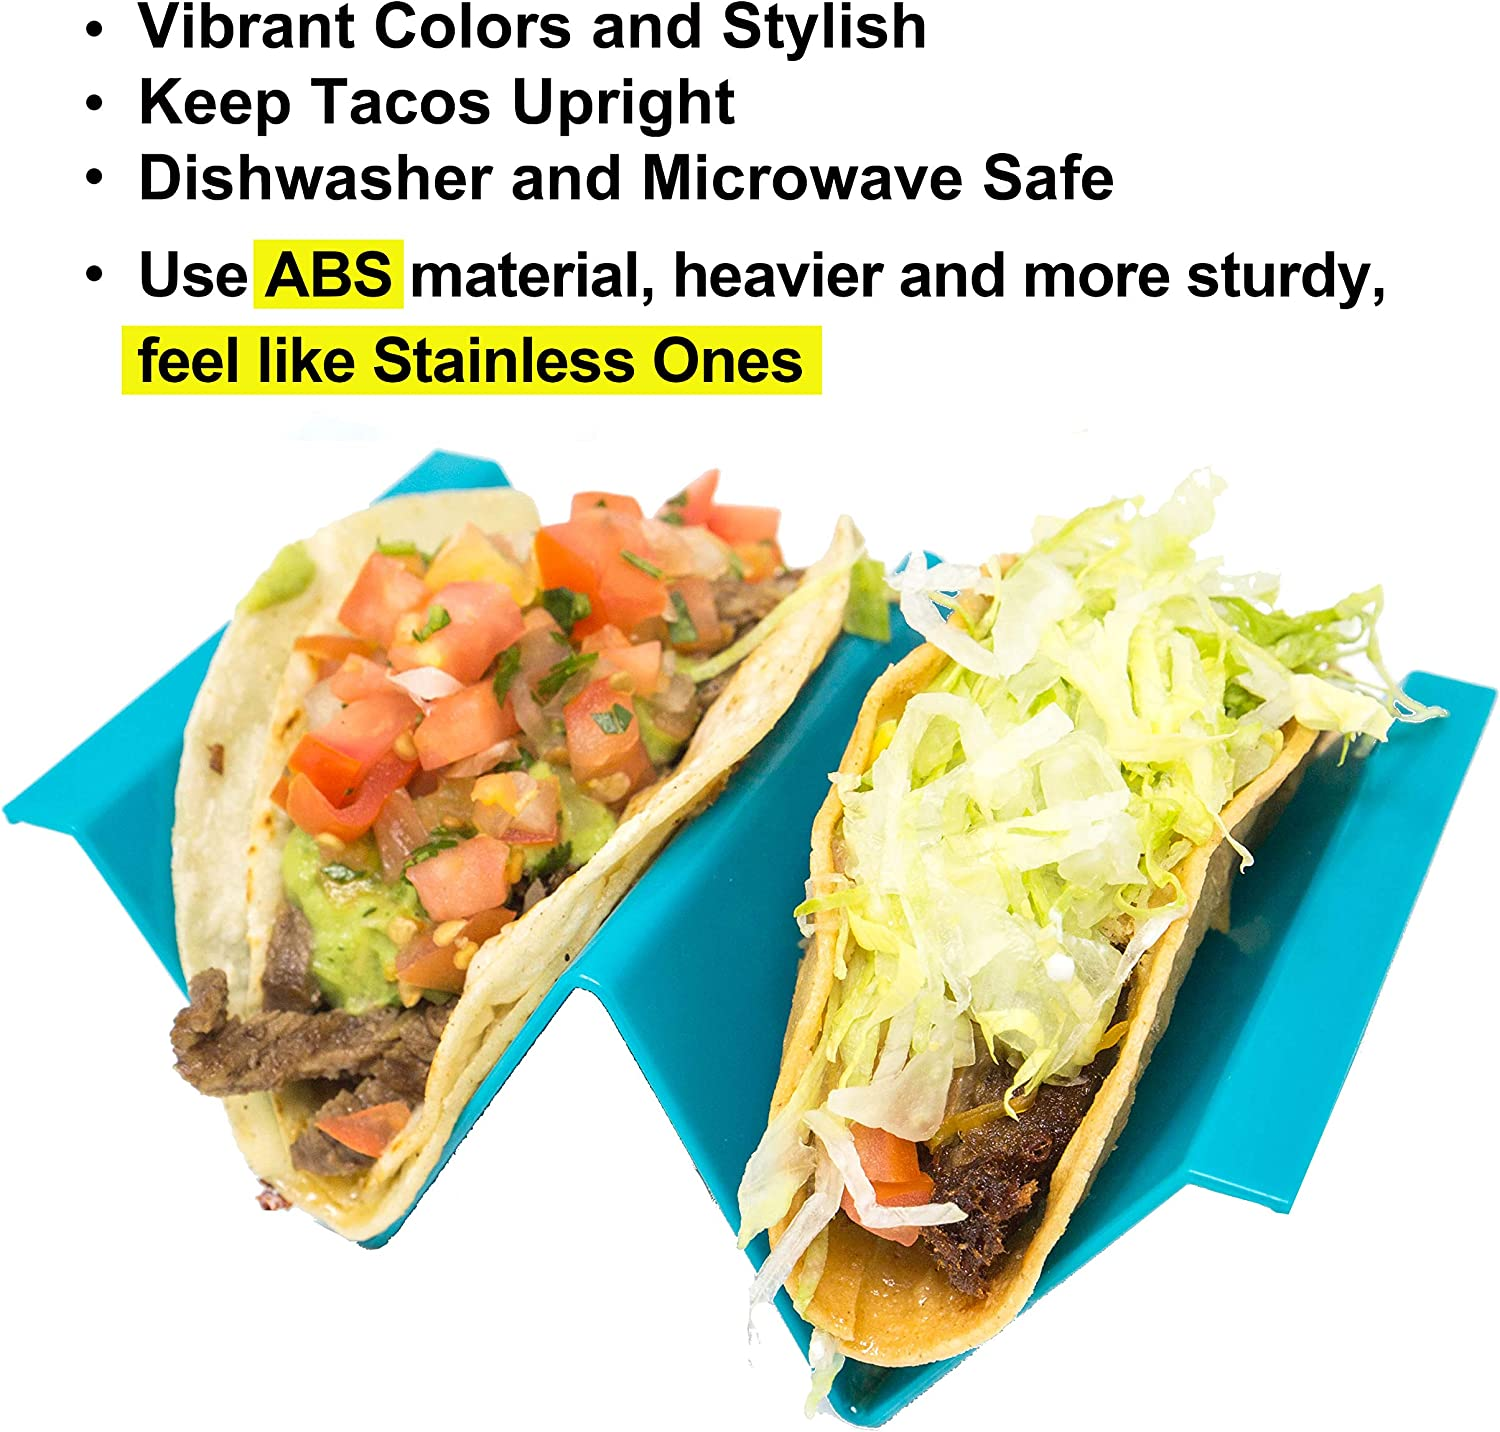 Youngever Taco Holder Stand Set of 5, Large Regular Size, Taco Plate, Taco Truck Tray Style, ABS Material, Very Hard and Sturdy, Dishwasher Top Rack ...